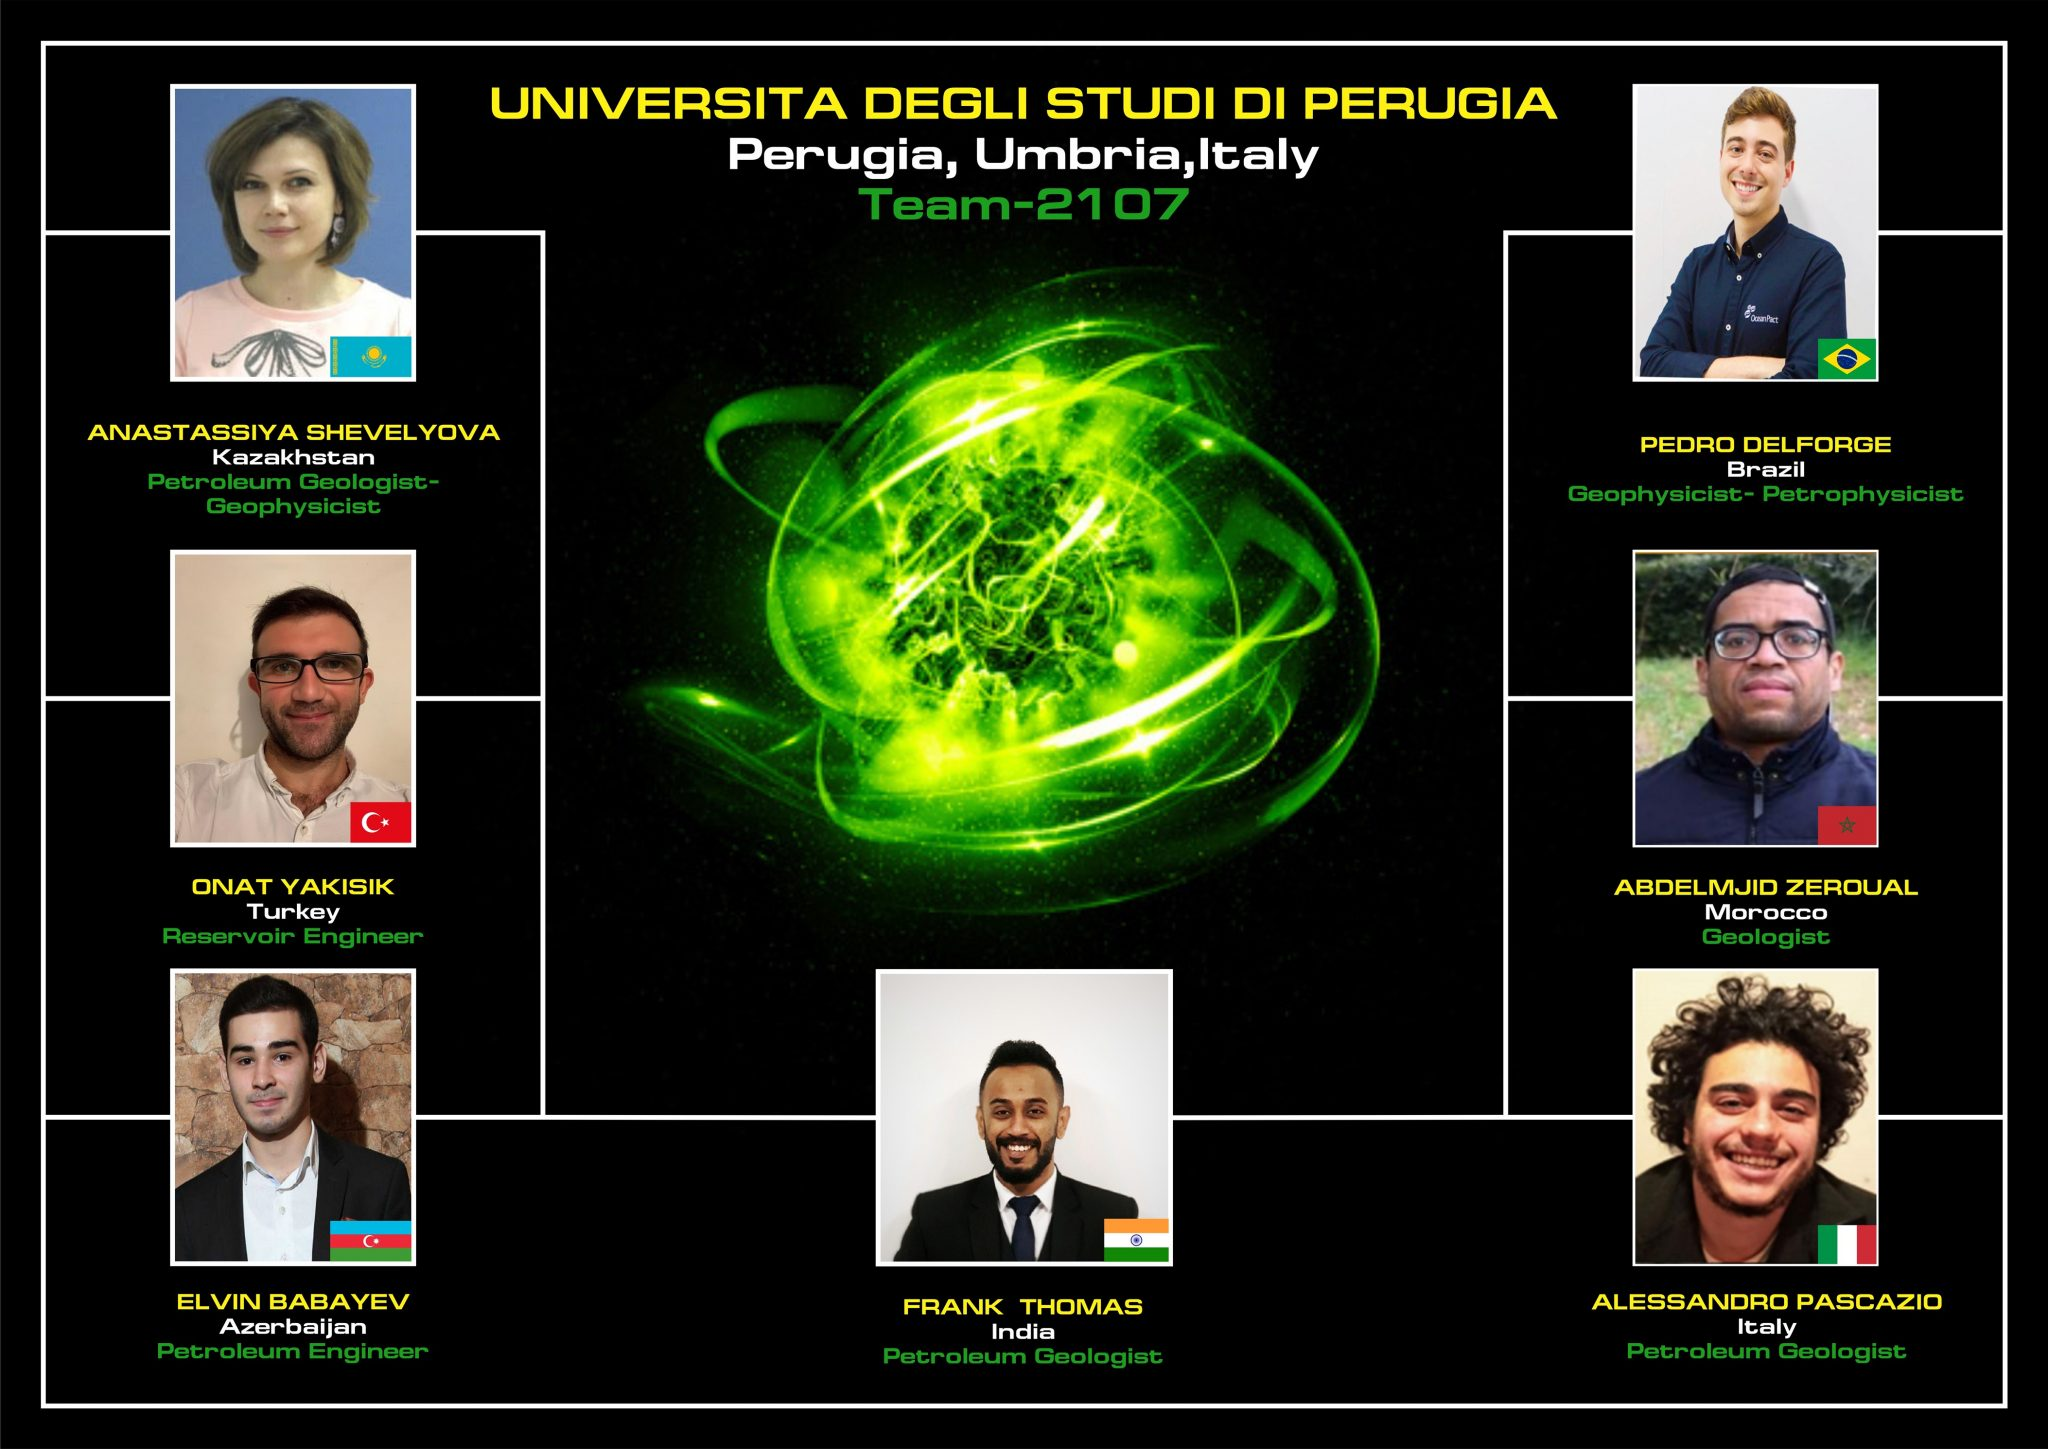 SEG EVOLVE PROGRAM: L'UNIVERSITA' DI PERUGIA C'E'!